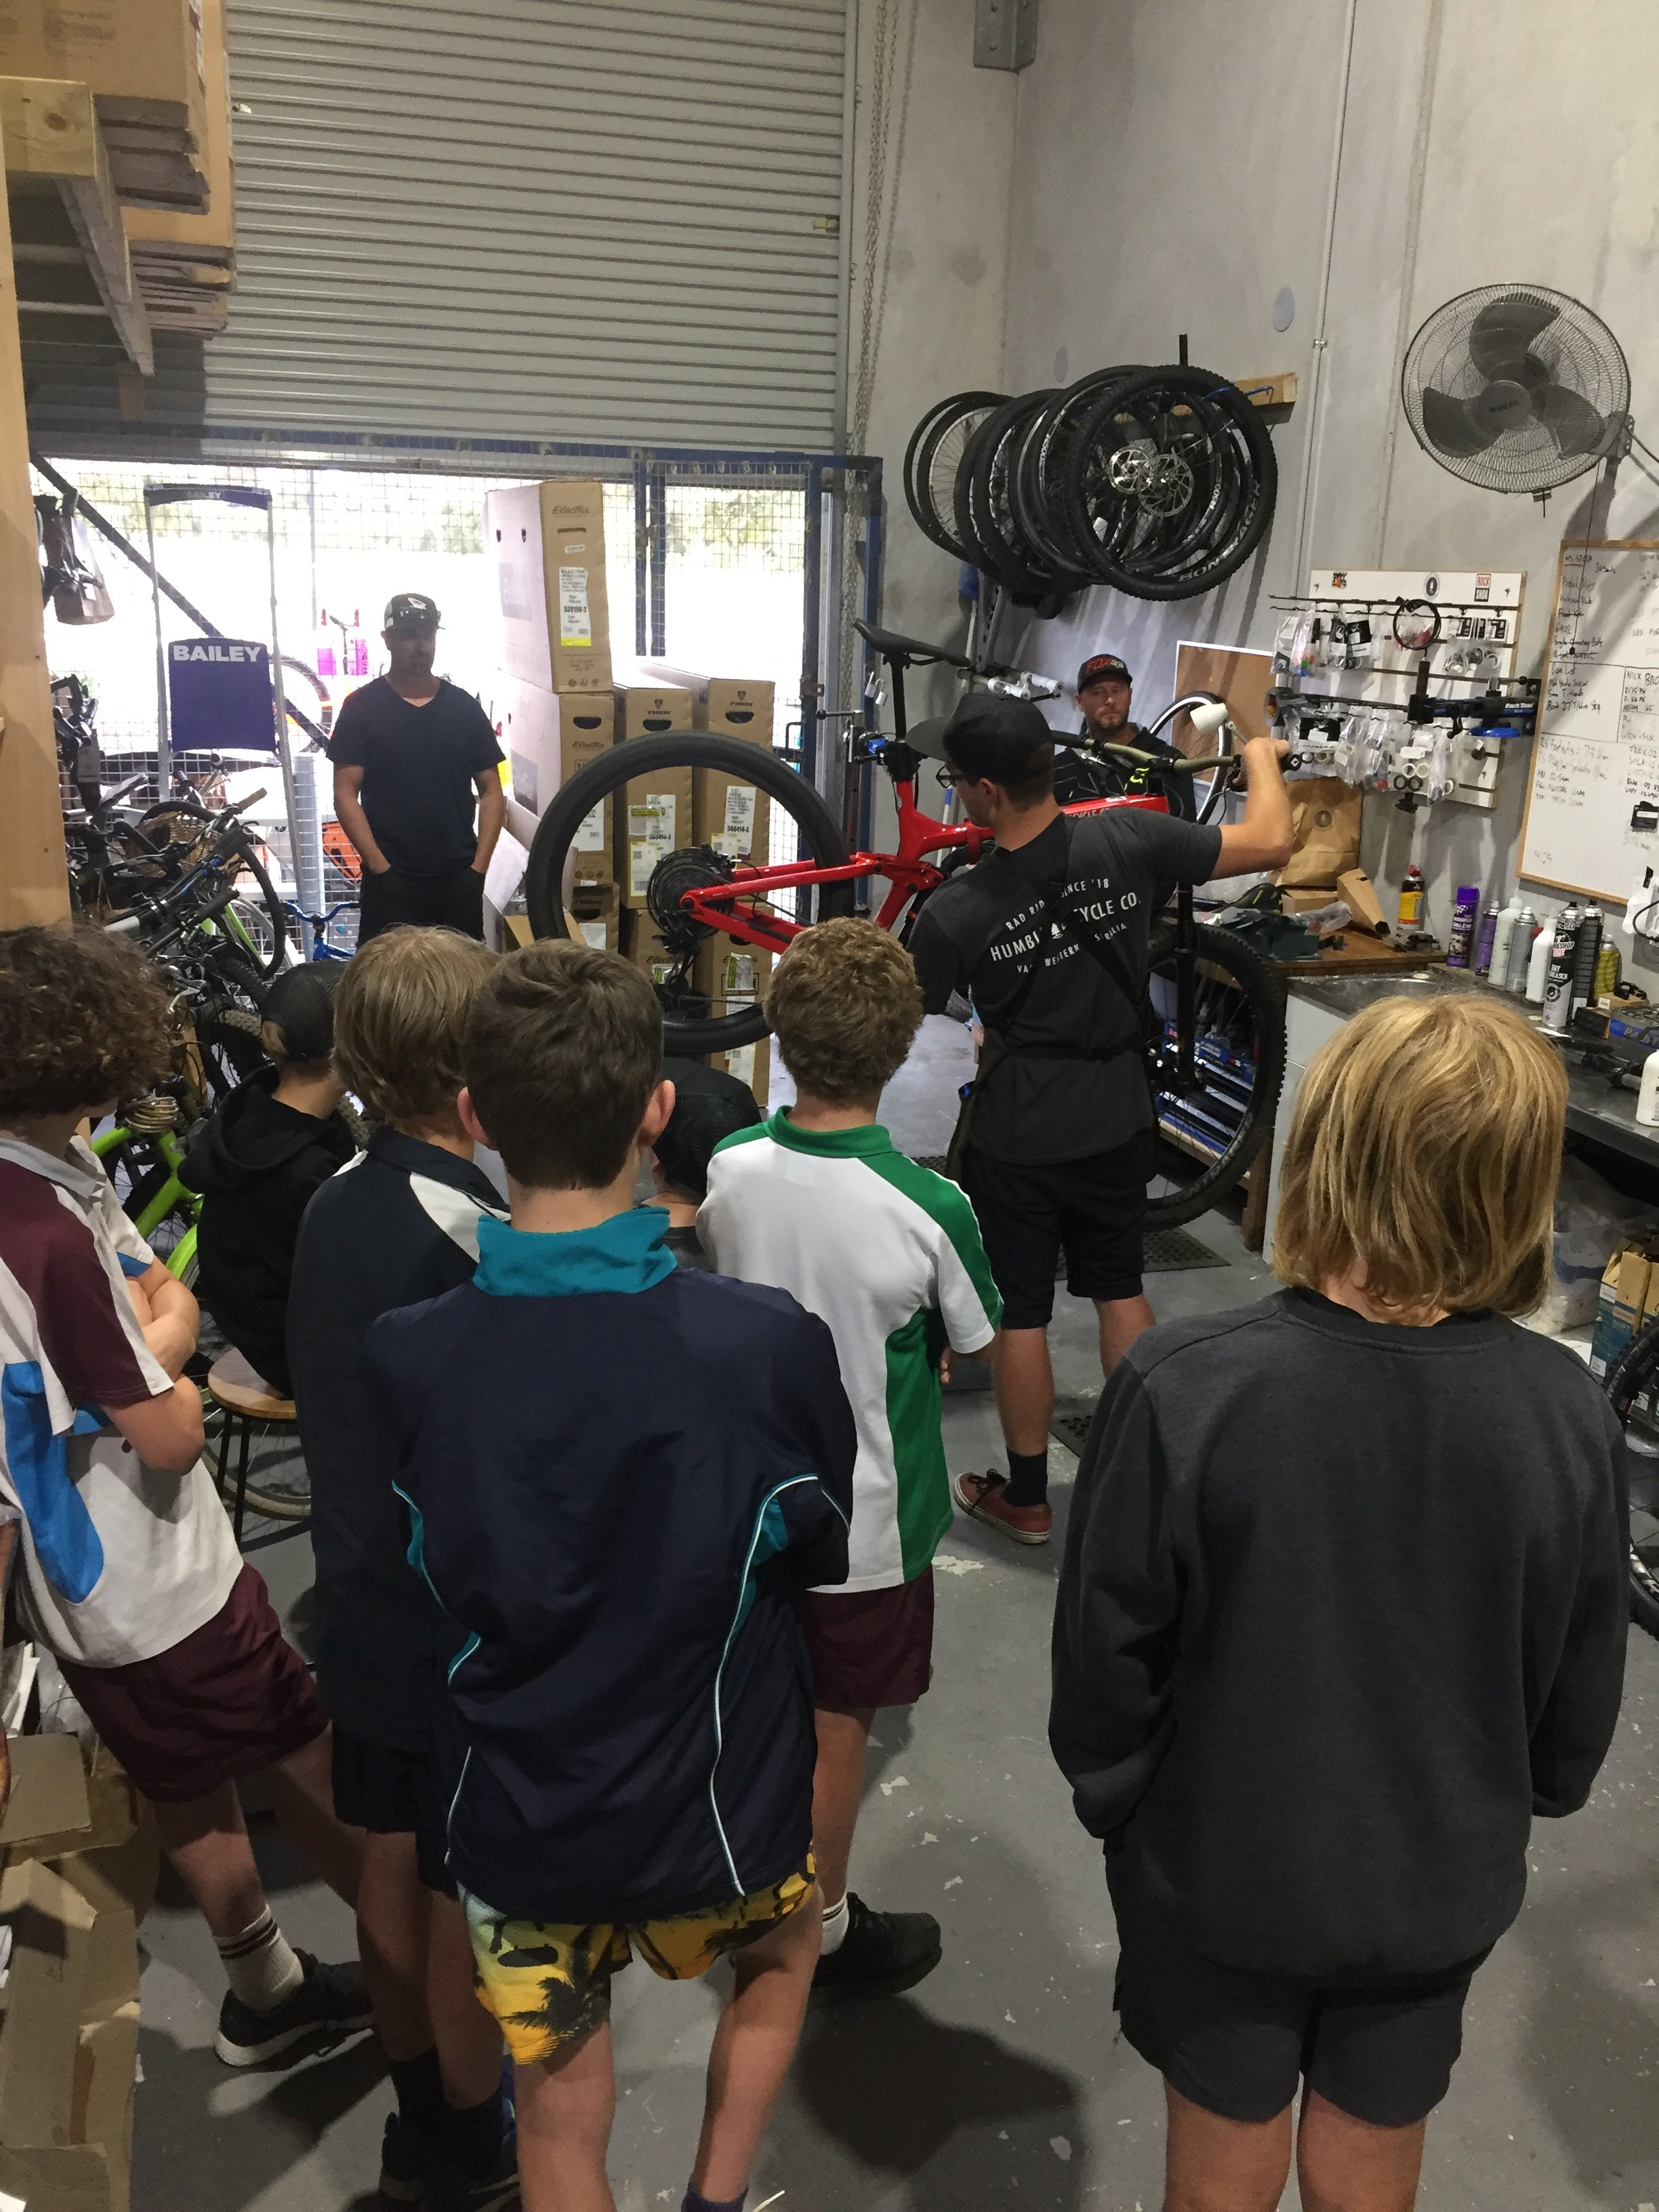 A big part of race preparation is understanding your equipment. We will be providing mechanical support to ensure everyones bikes are running perfectly on race day.